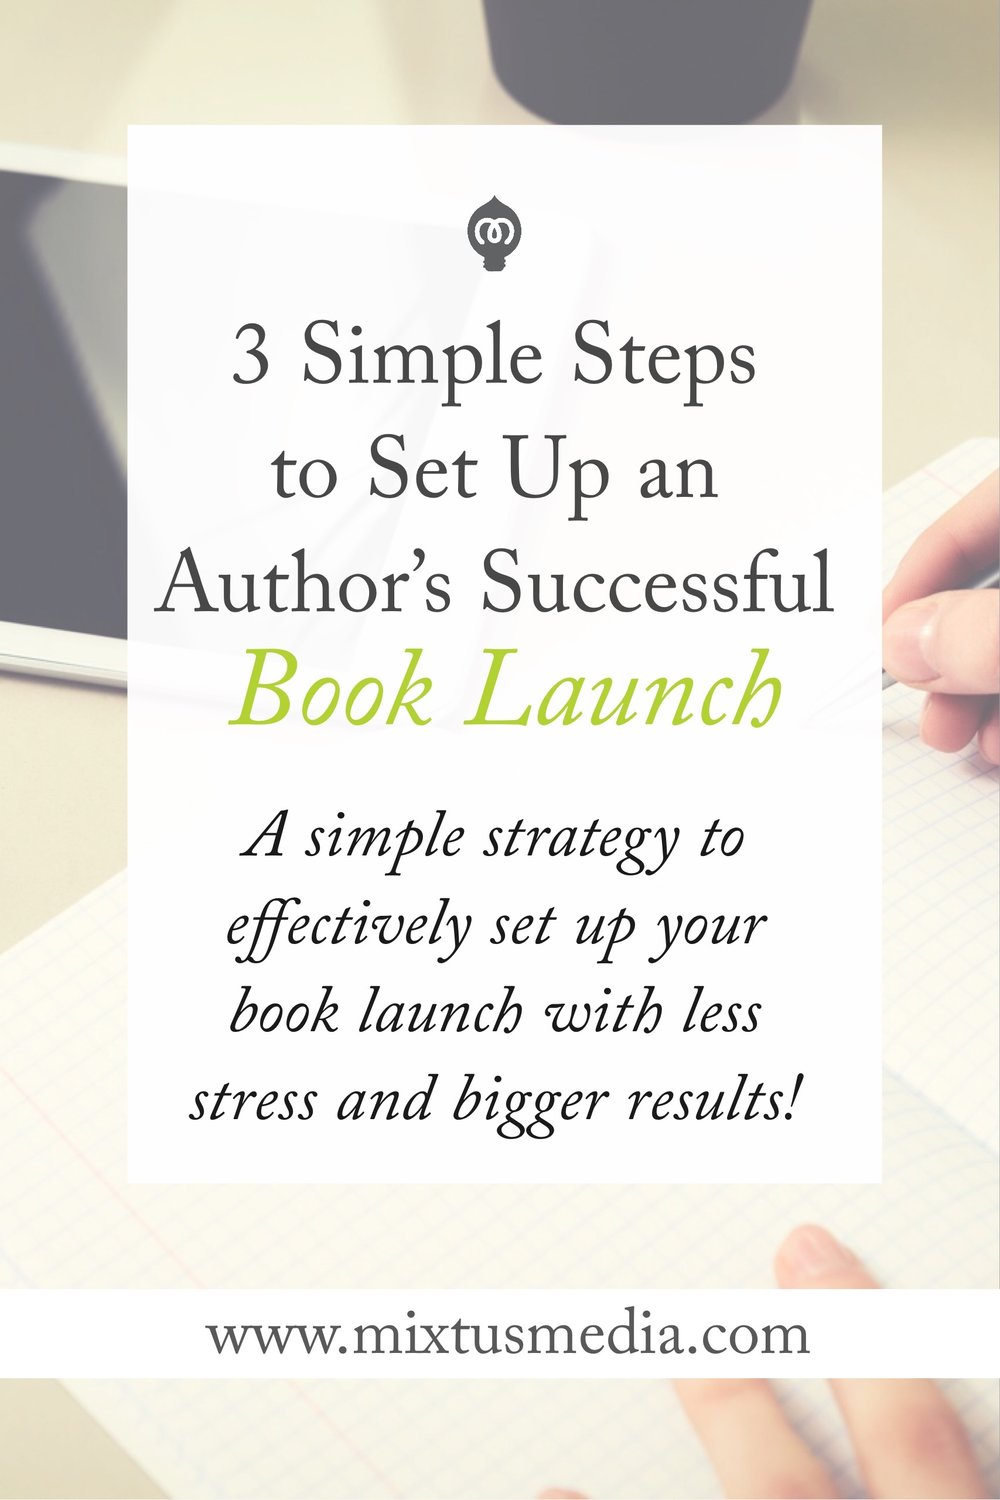 A simple strategy to effectively set up your book launch with less stress and bigger results.